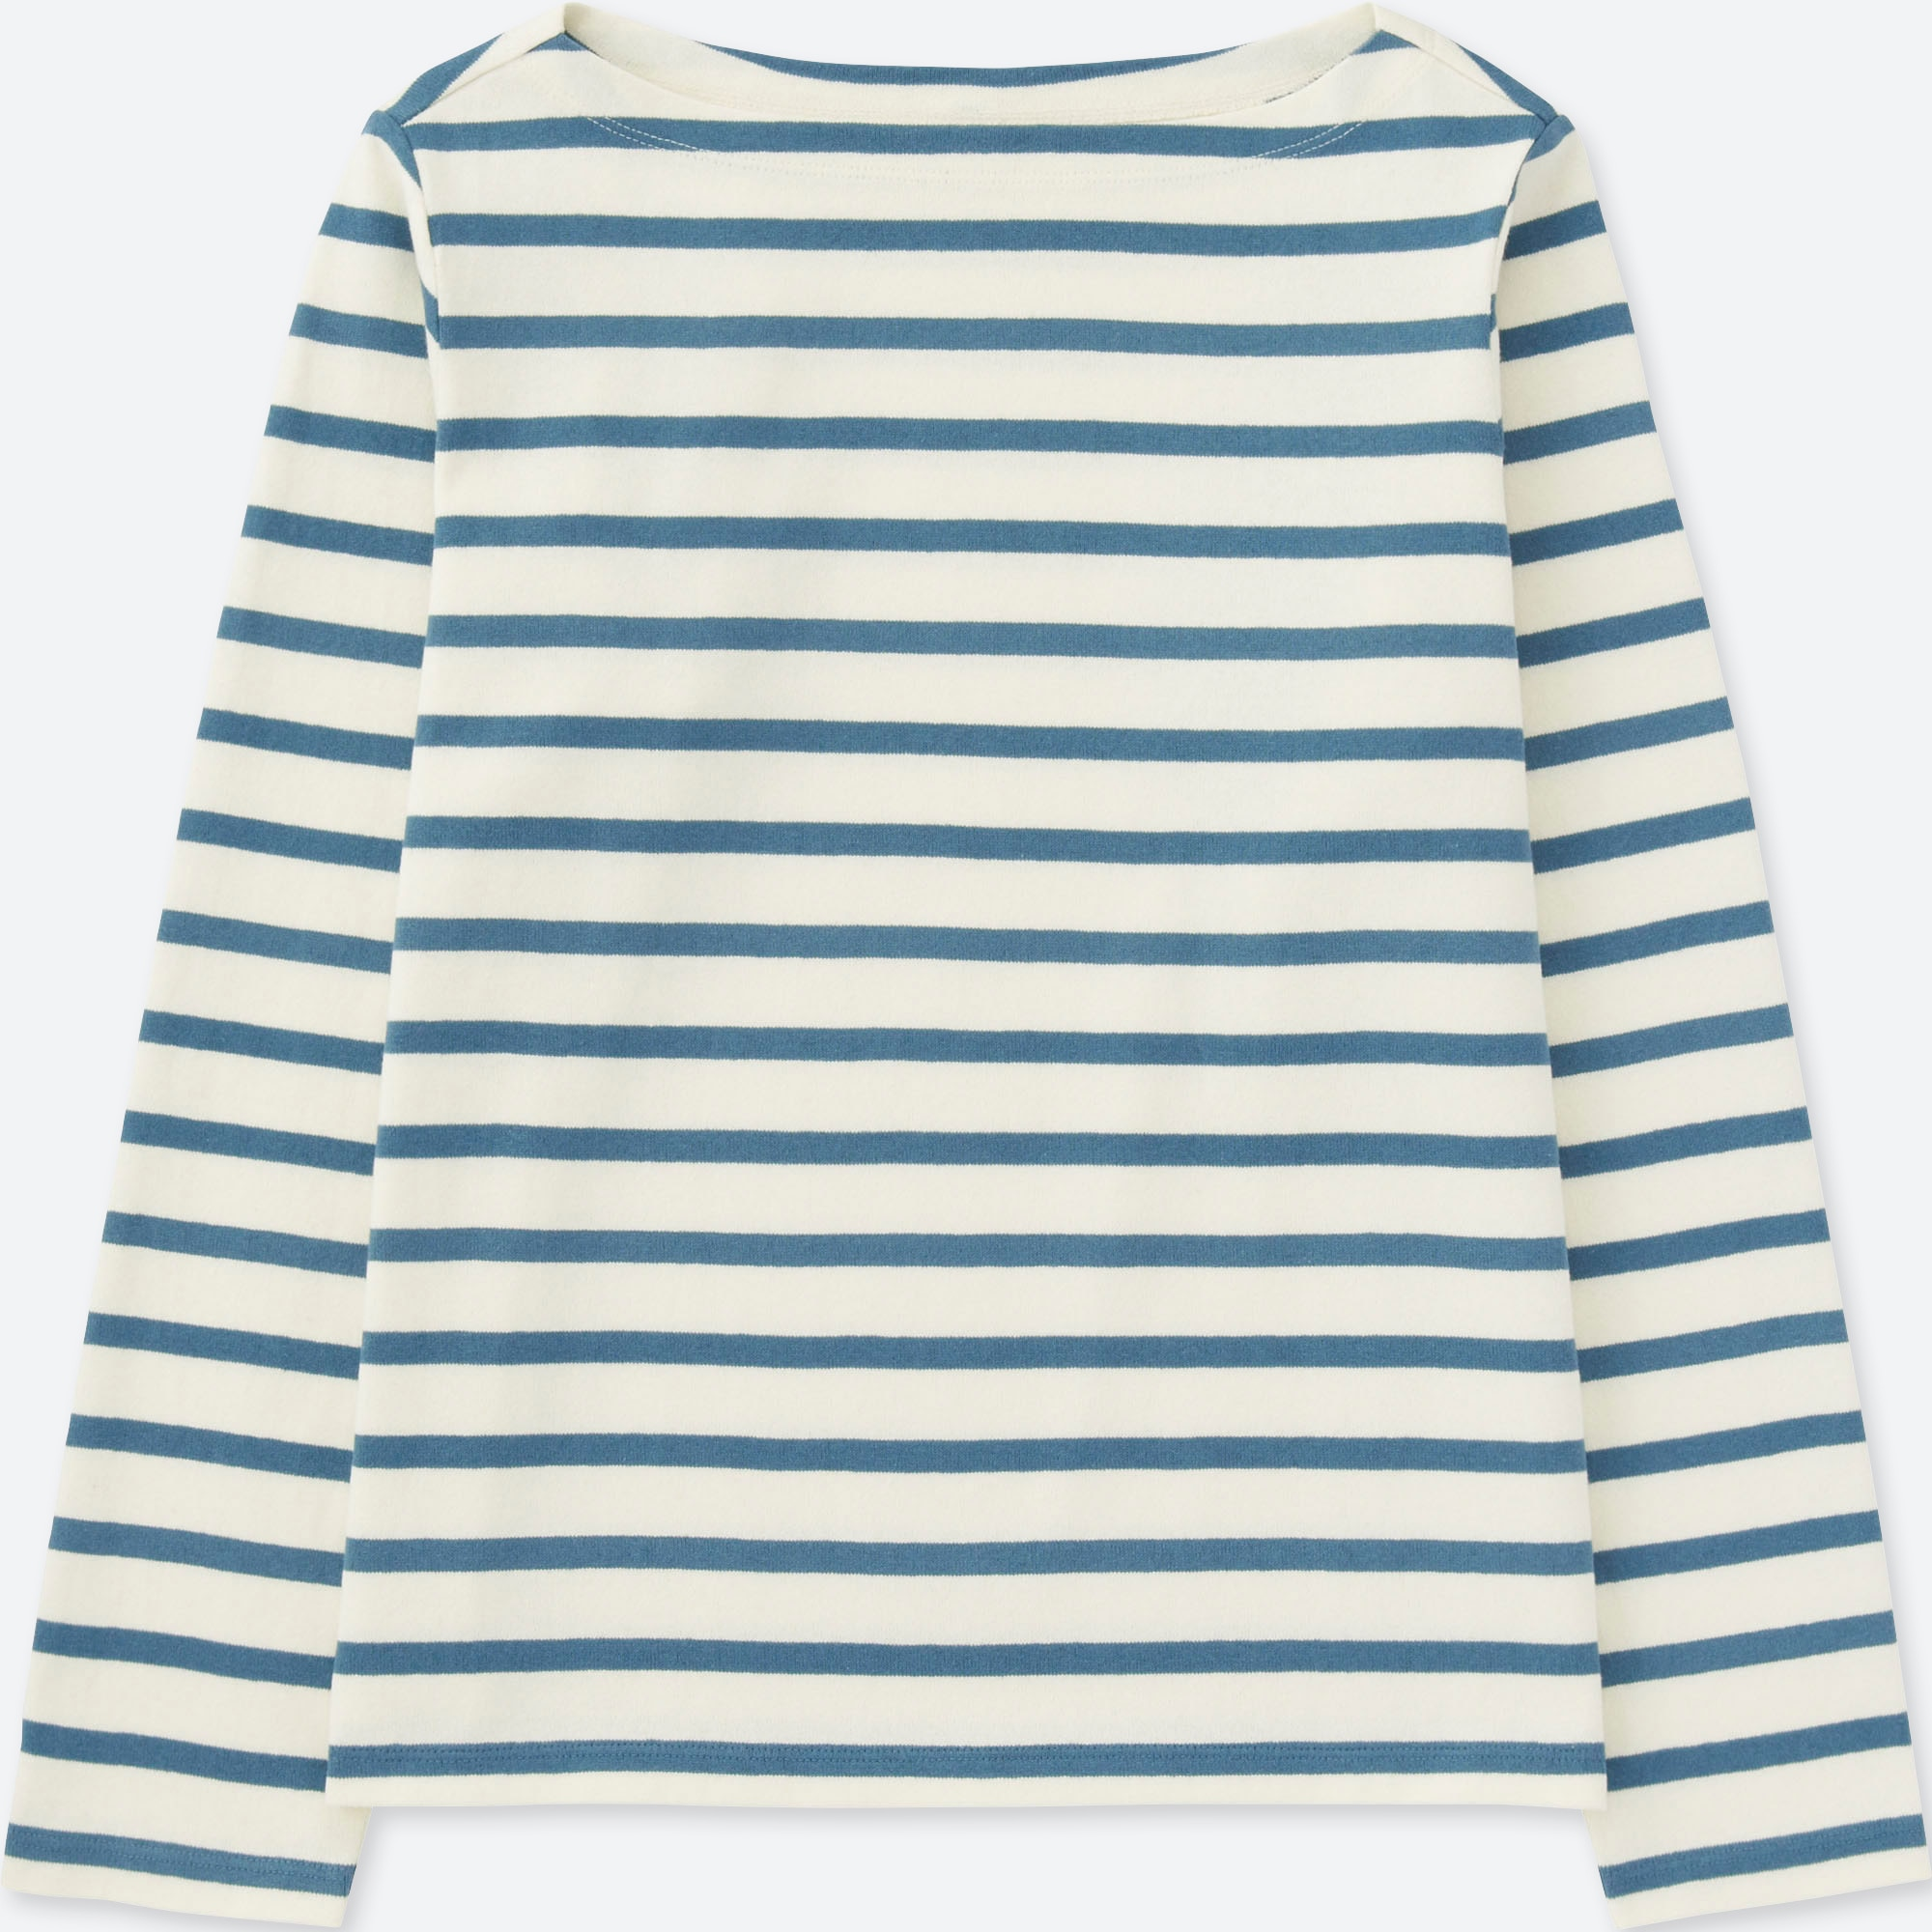 5af7bb5e59 WOMEN STRIPED BOAT NECK LONG SLEEVE T-SHIRT, BLUE, large Opens a New Window.